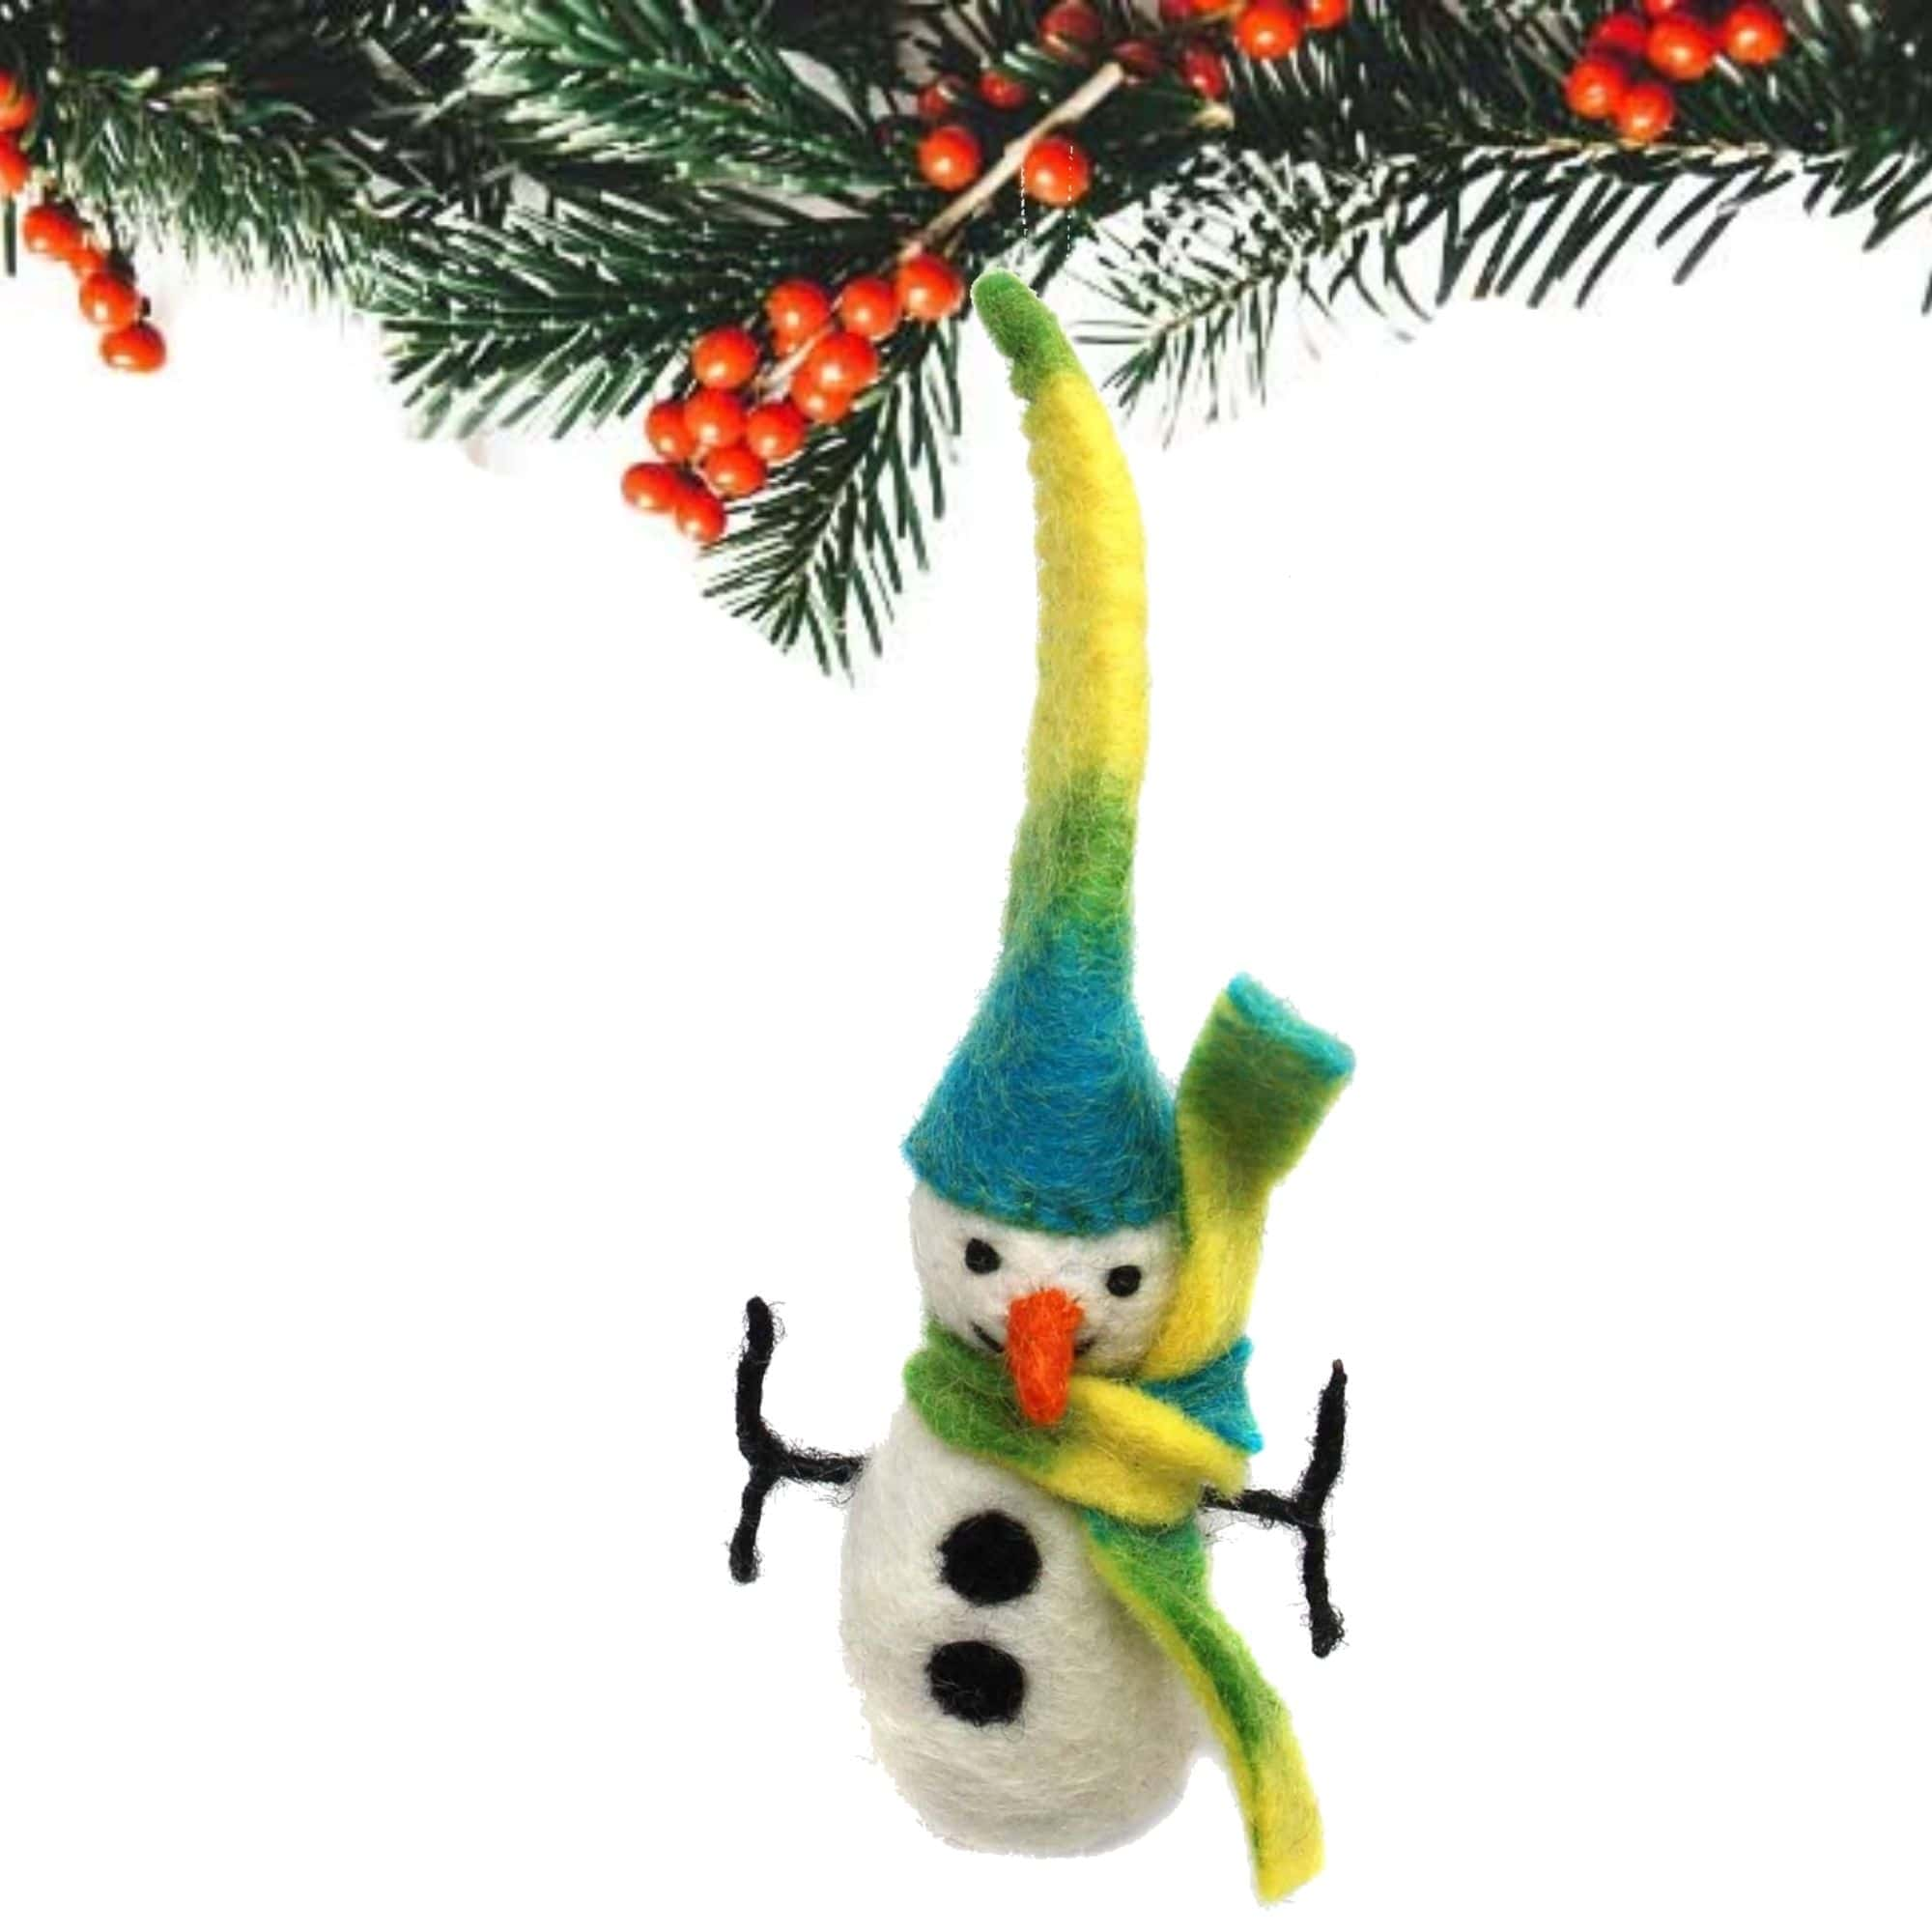 Icy Winter Snowman Felt Ornament